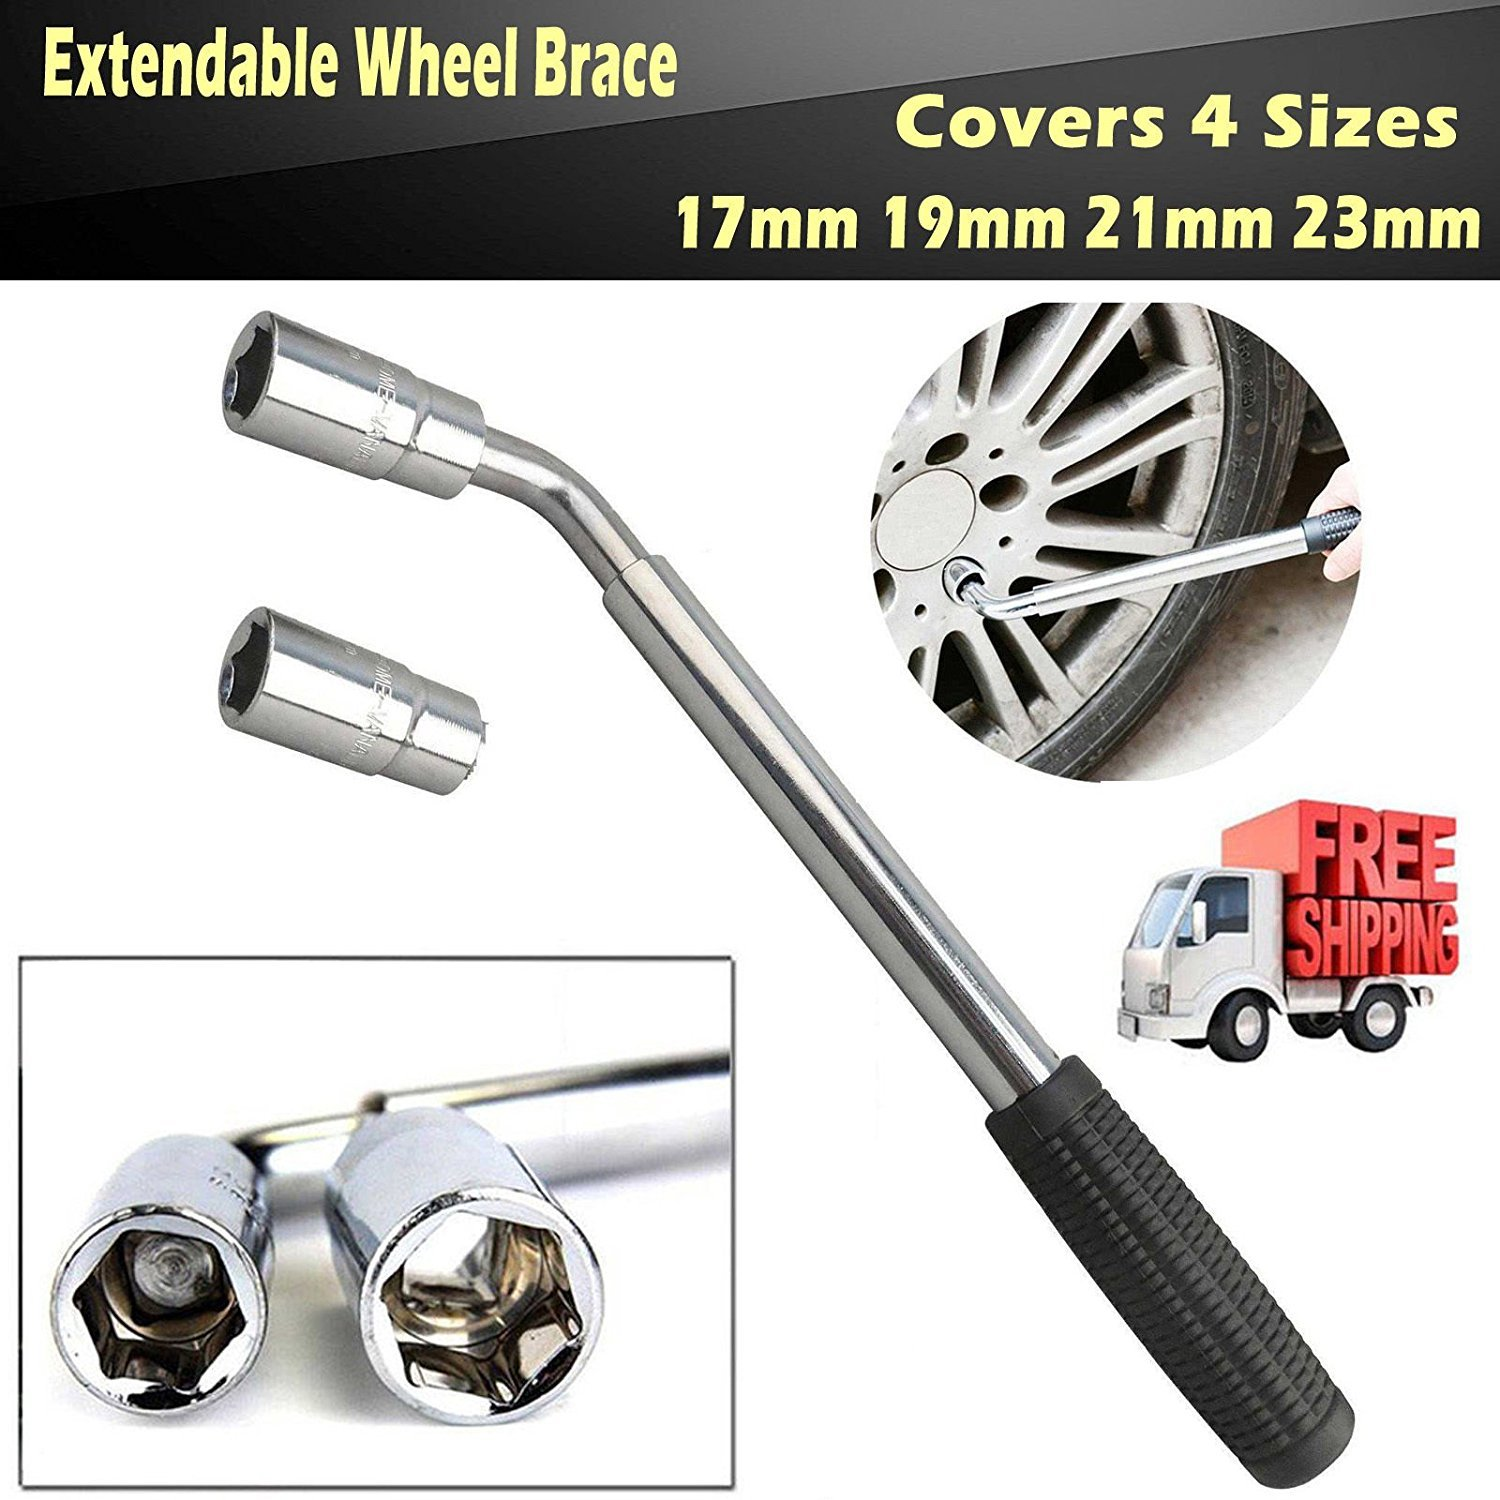 Extending Wheel Nut Brace Telescopic with 17mm 19mm 21mm 23mm 4 Standards Lug Wrench for Spare Tire Repair Emergency Hand Tools